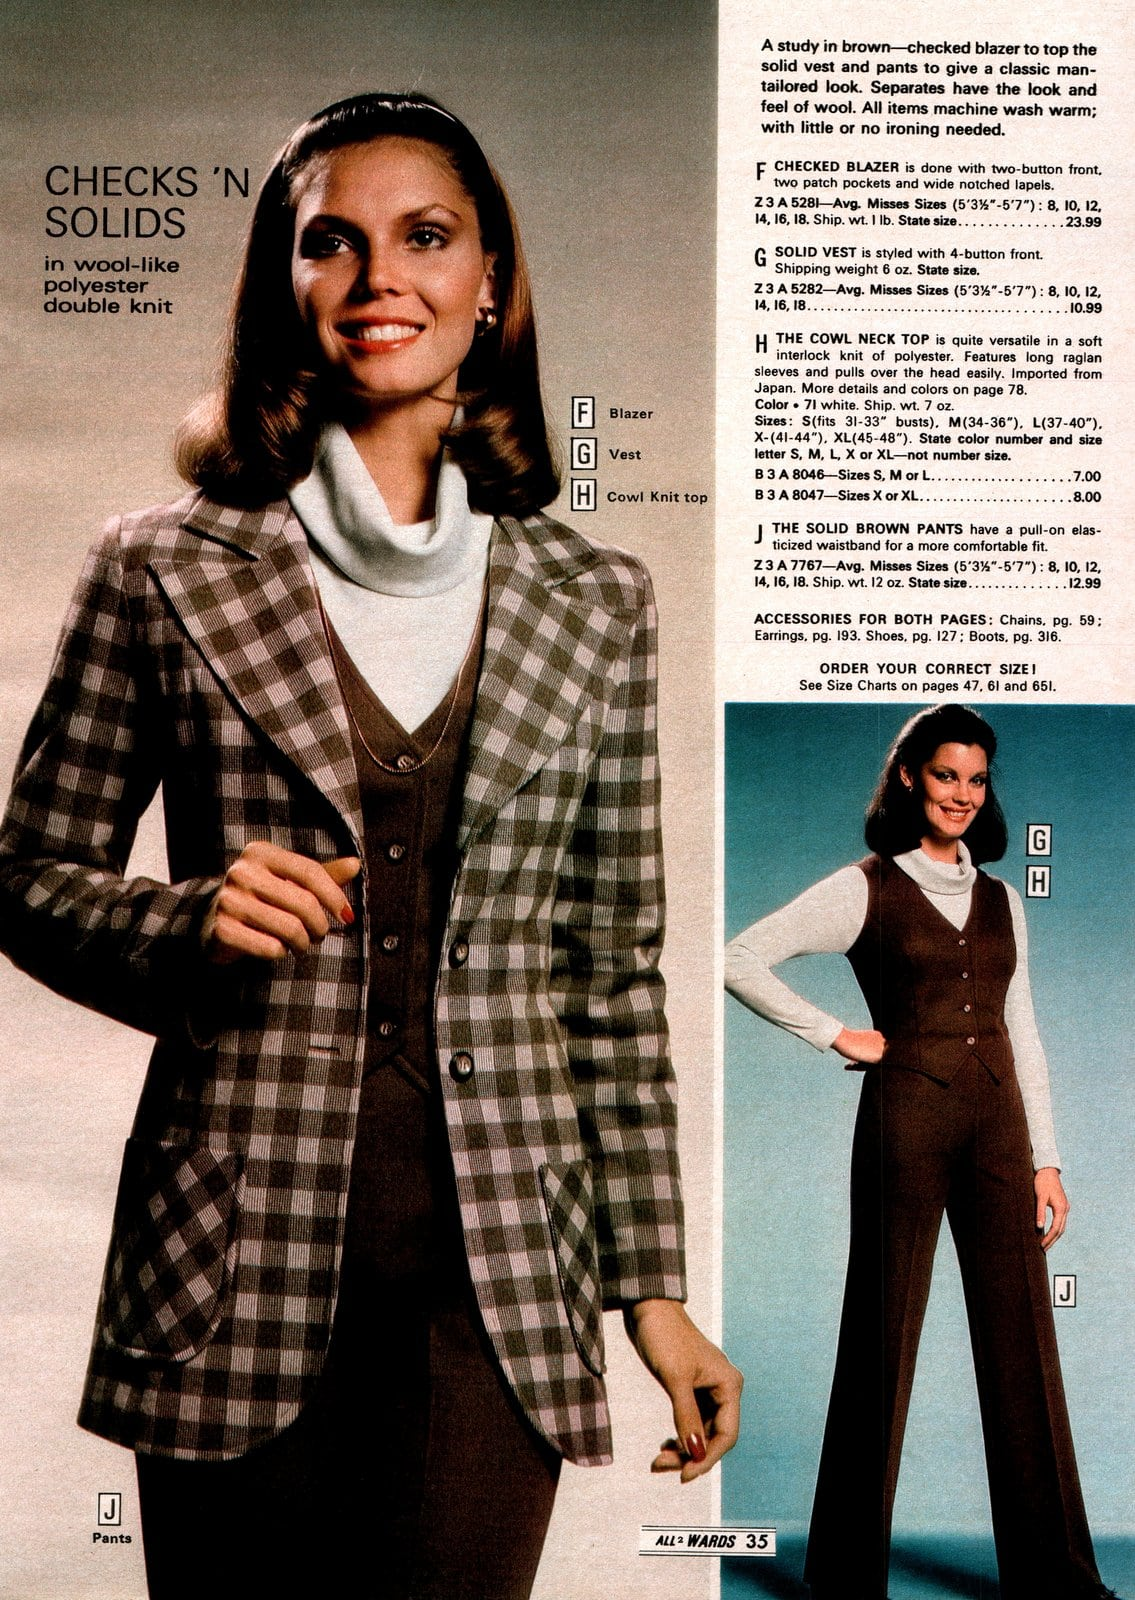 Woman in cowl-neck shirt and checked brown double-knit polyester paintsuit with jacket (1979)